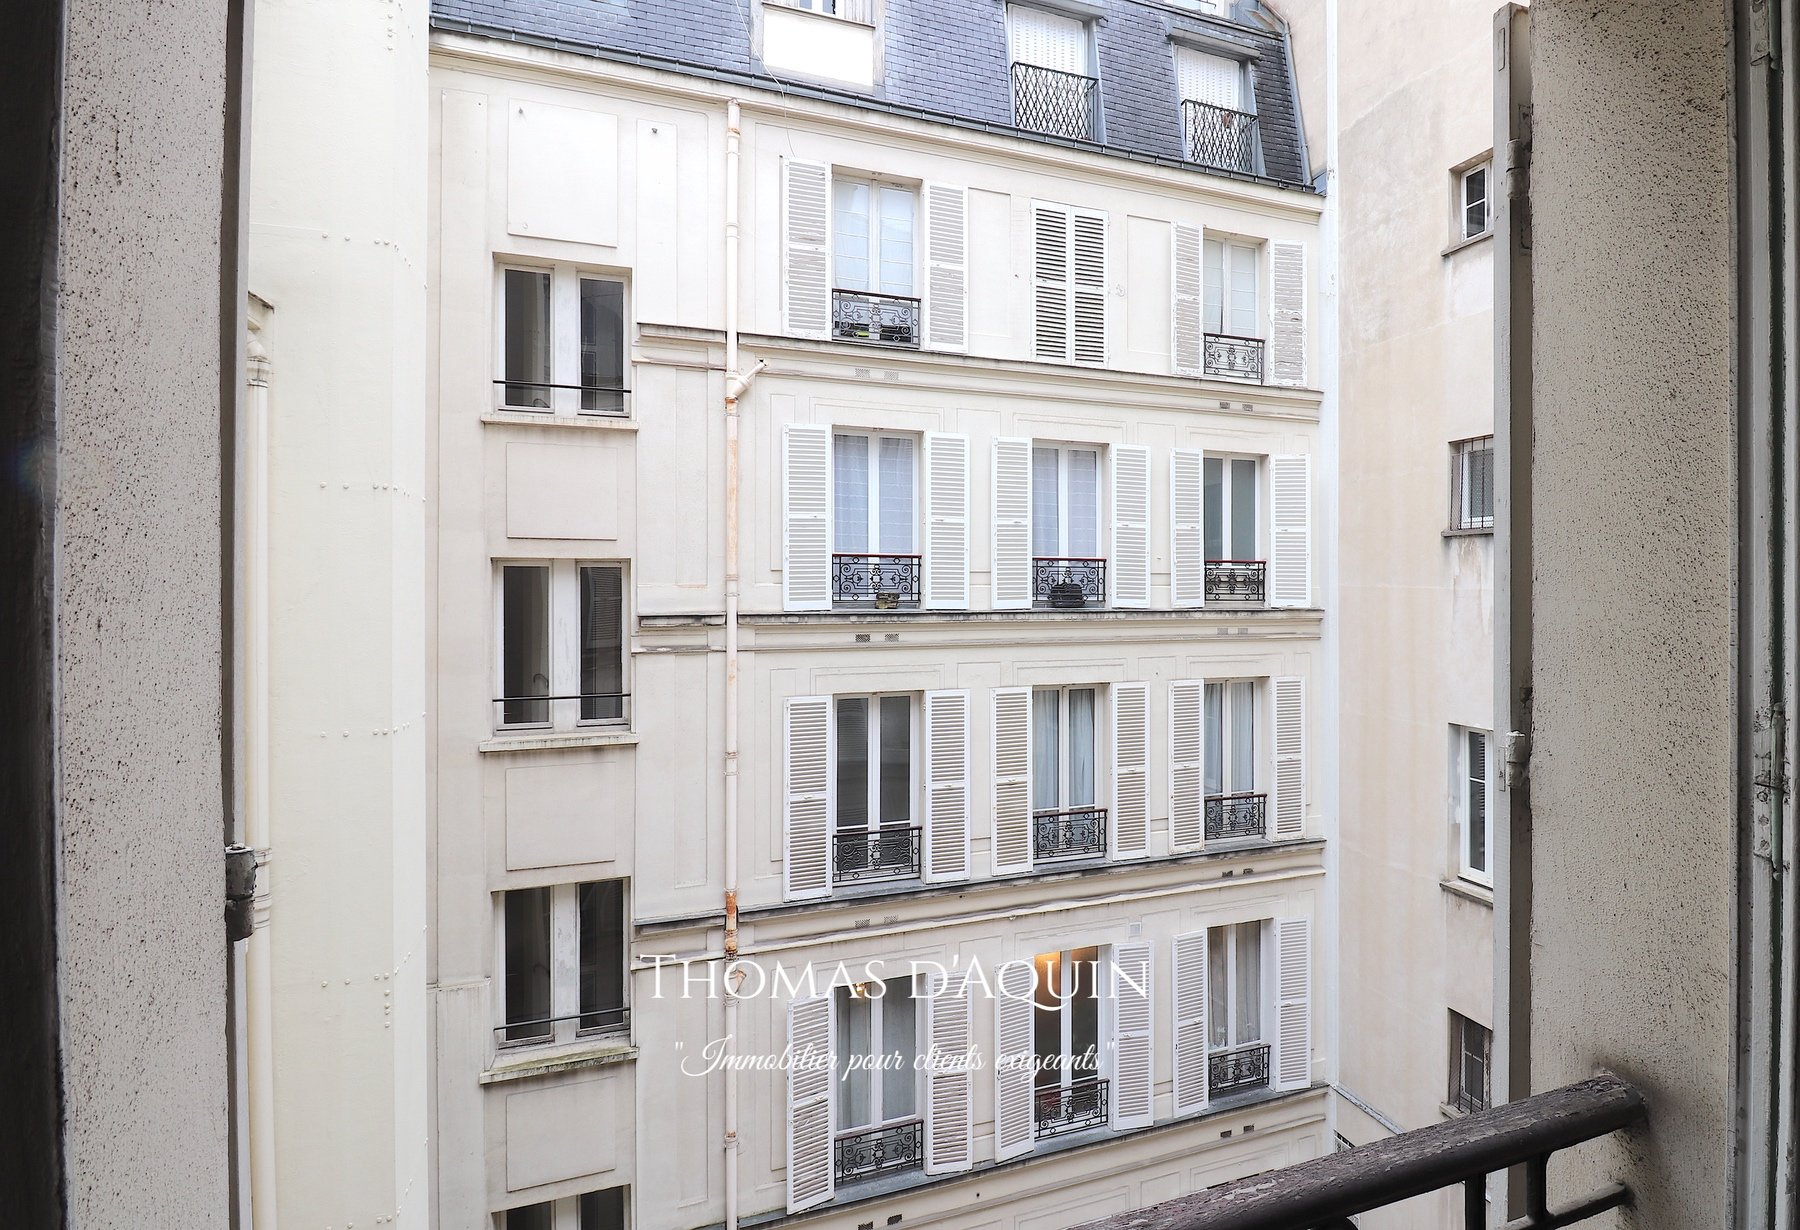 Sale Apartment - Paris 6th (Paris 6ème) Odéon